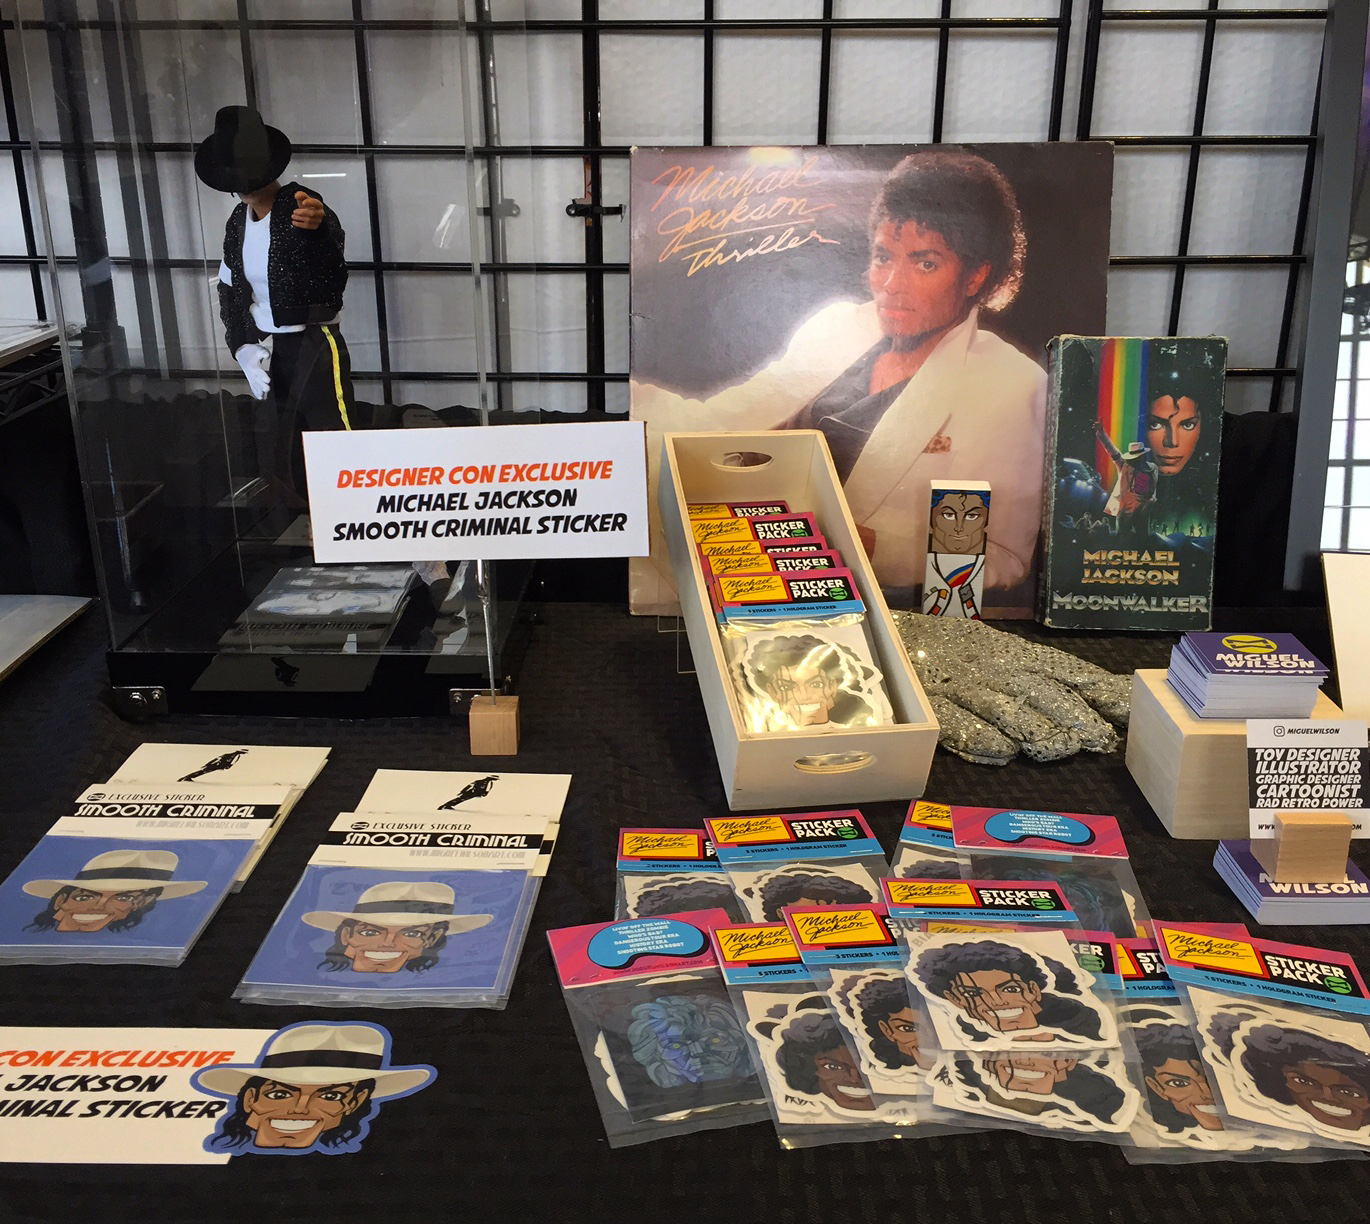 Designer Con 2016 - MJ Sticker Packs and collection